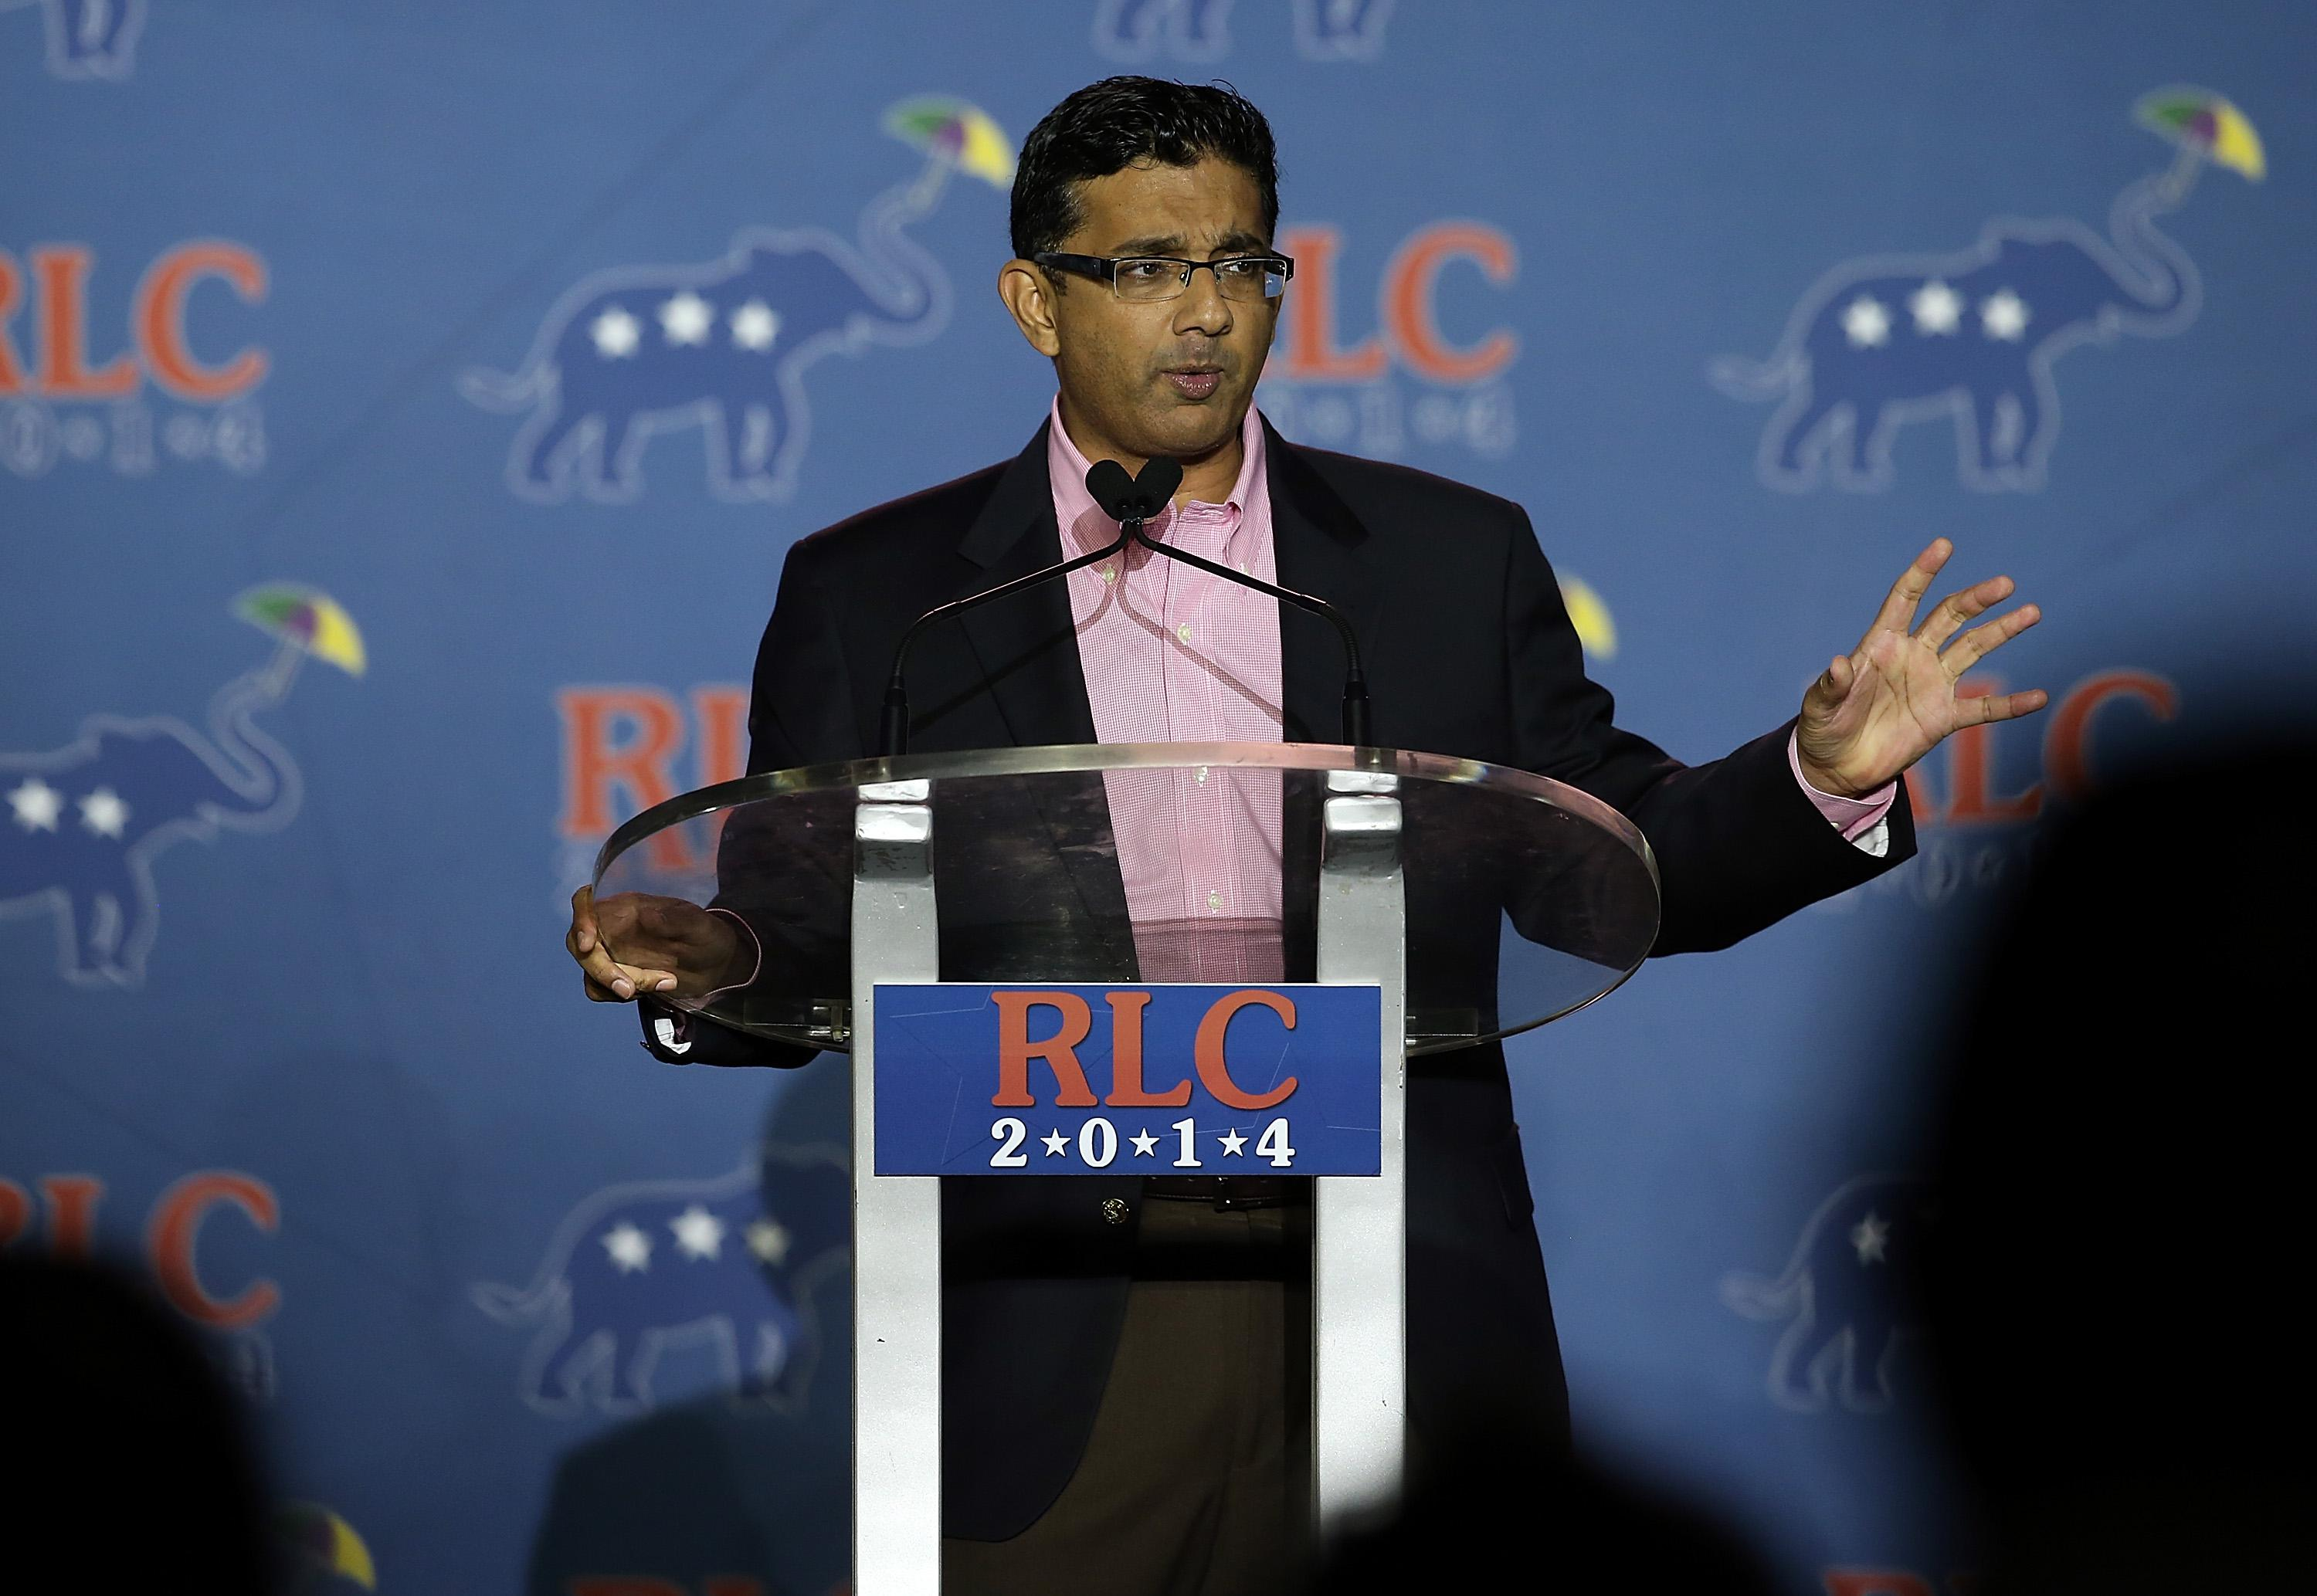 NEW ORLEANS, LA - MAY 31:  Conservative filmmaker and author Dinesh D'Souza speaks during the final day of the 2014 Republican Leadership Conference on May 31, 2014 in New Orleans, Louisiana.  Some of the biggest names in the Republican Party made appearances at the conference, which hosts 1,500 delegates from across the country through May 31.  (Photo by Justin Sullivan/Getty Images)